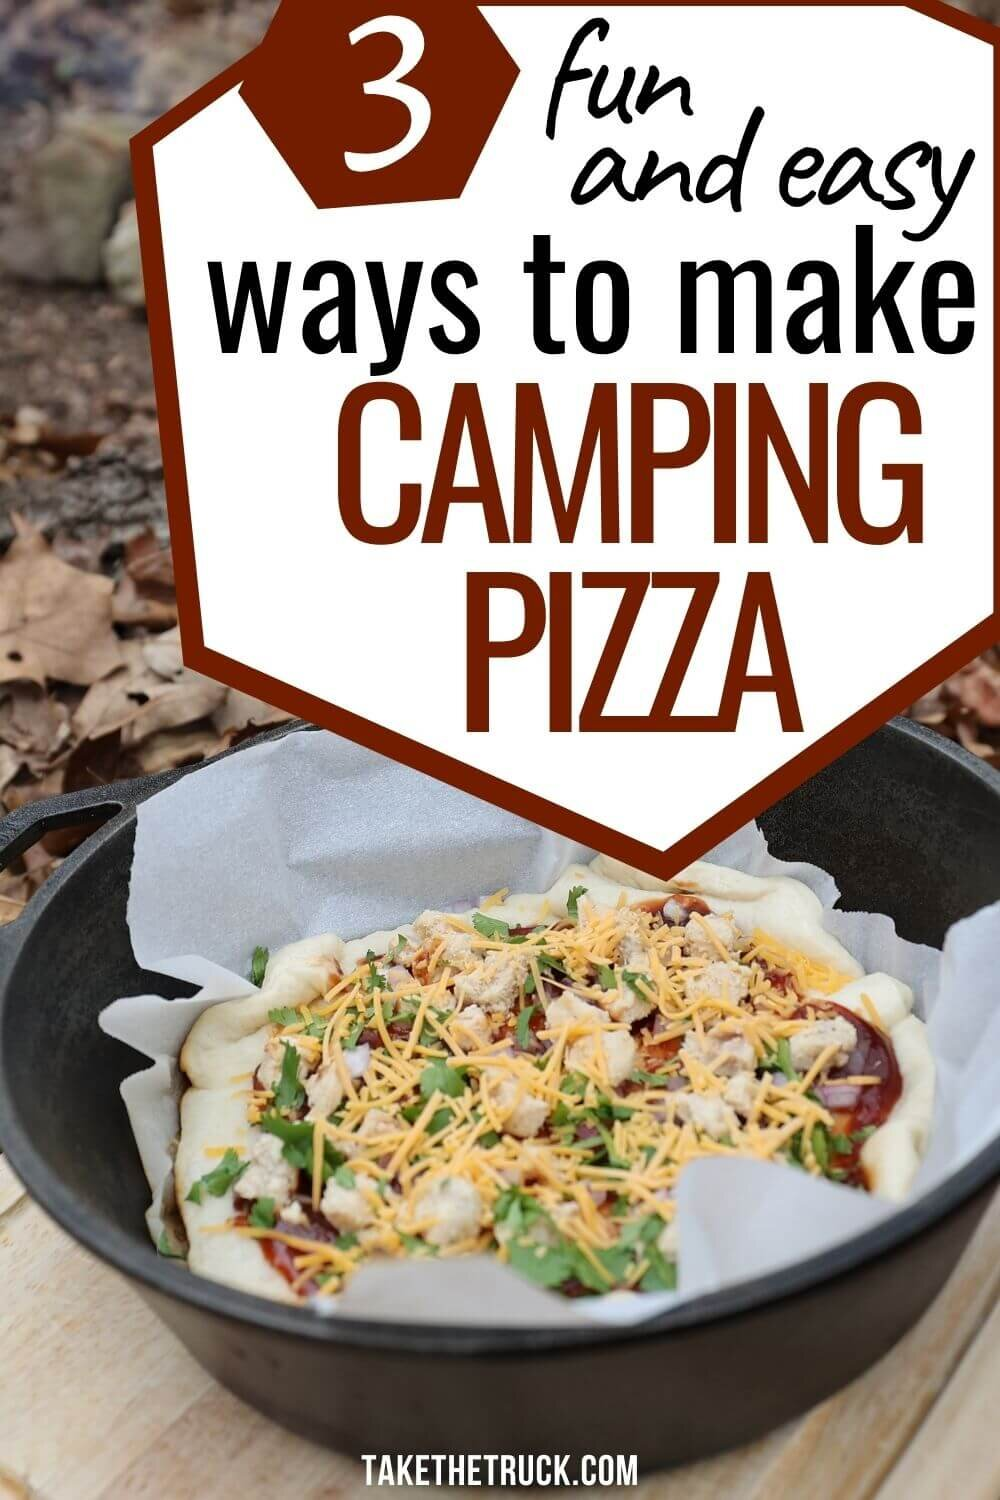 Want pizza while camping? Here's 3 easy options for enjoying camping pizza: melty campfire pizza, dutch oven pizza in a cast iron skillet, and pie iron pizza (aka pudgy pie pizza).